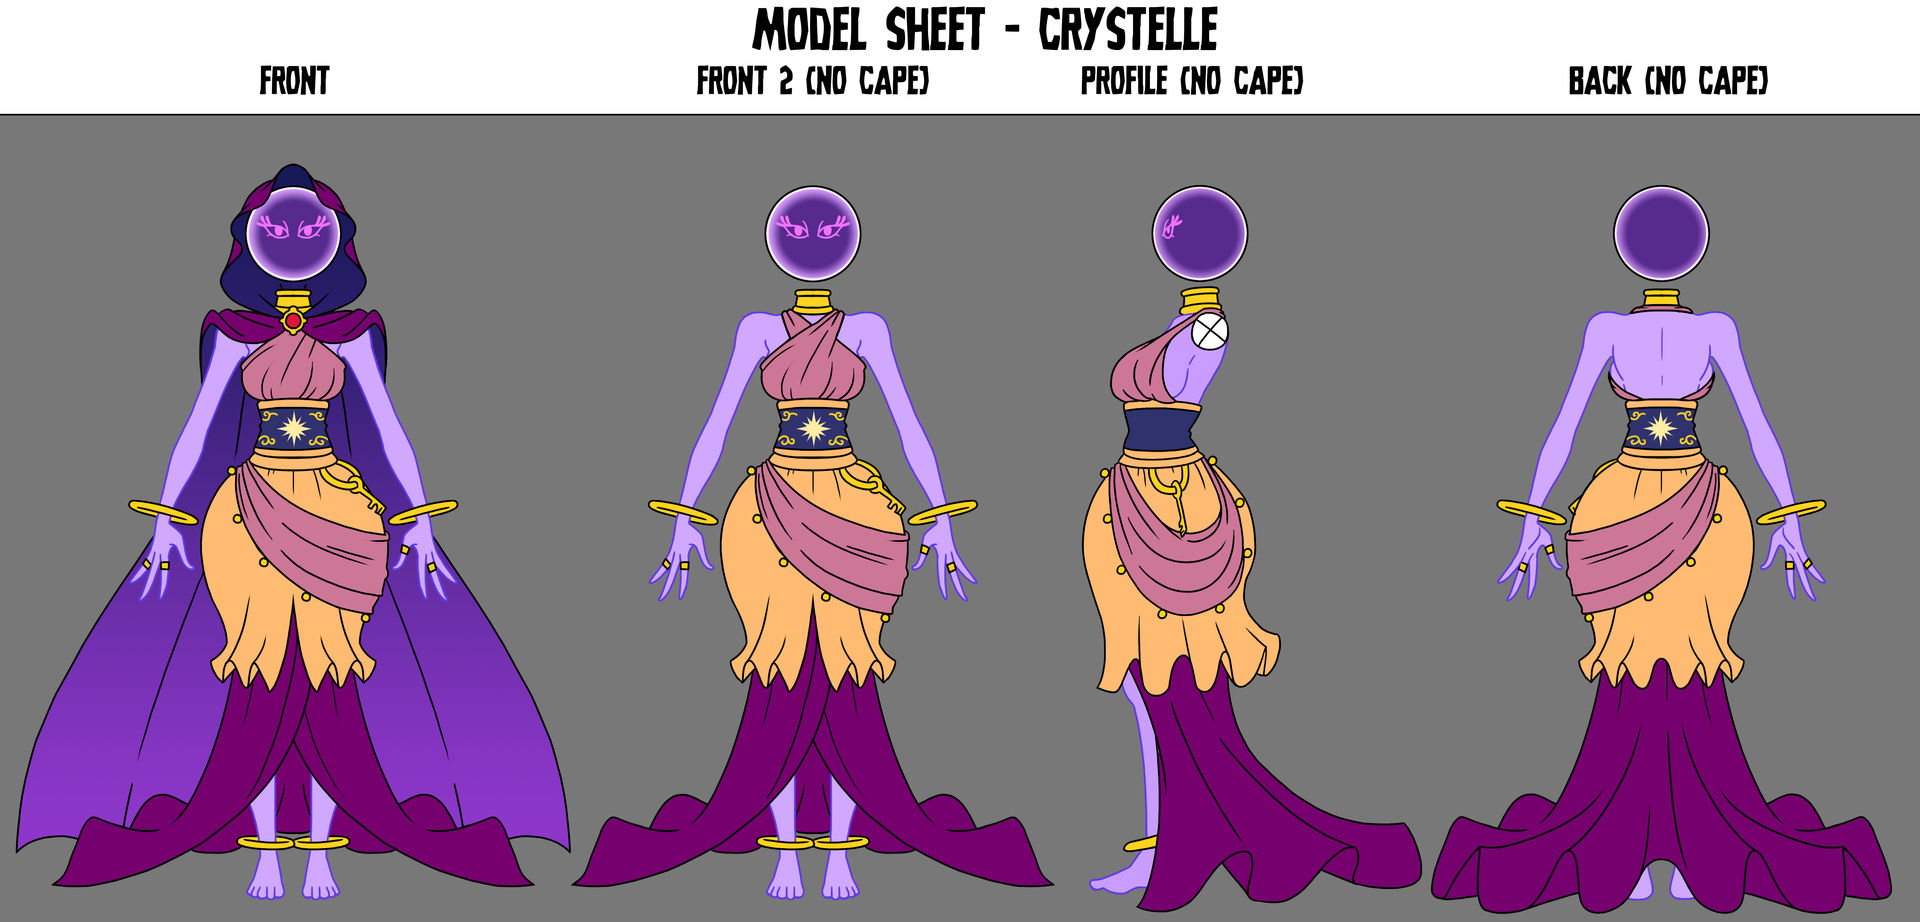 Crafty Concoction: Crystelle Model Sheet by DrCrafty